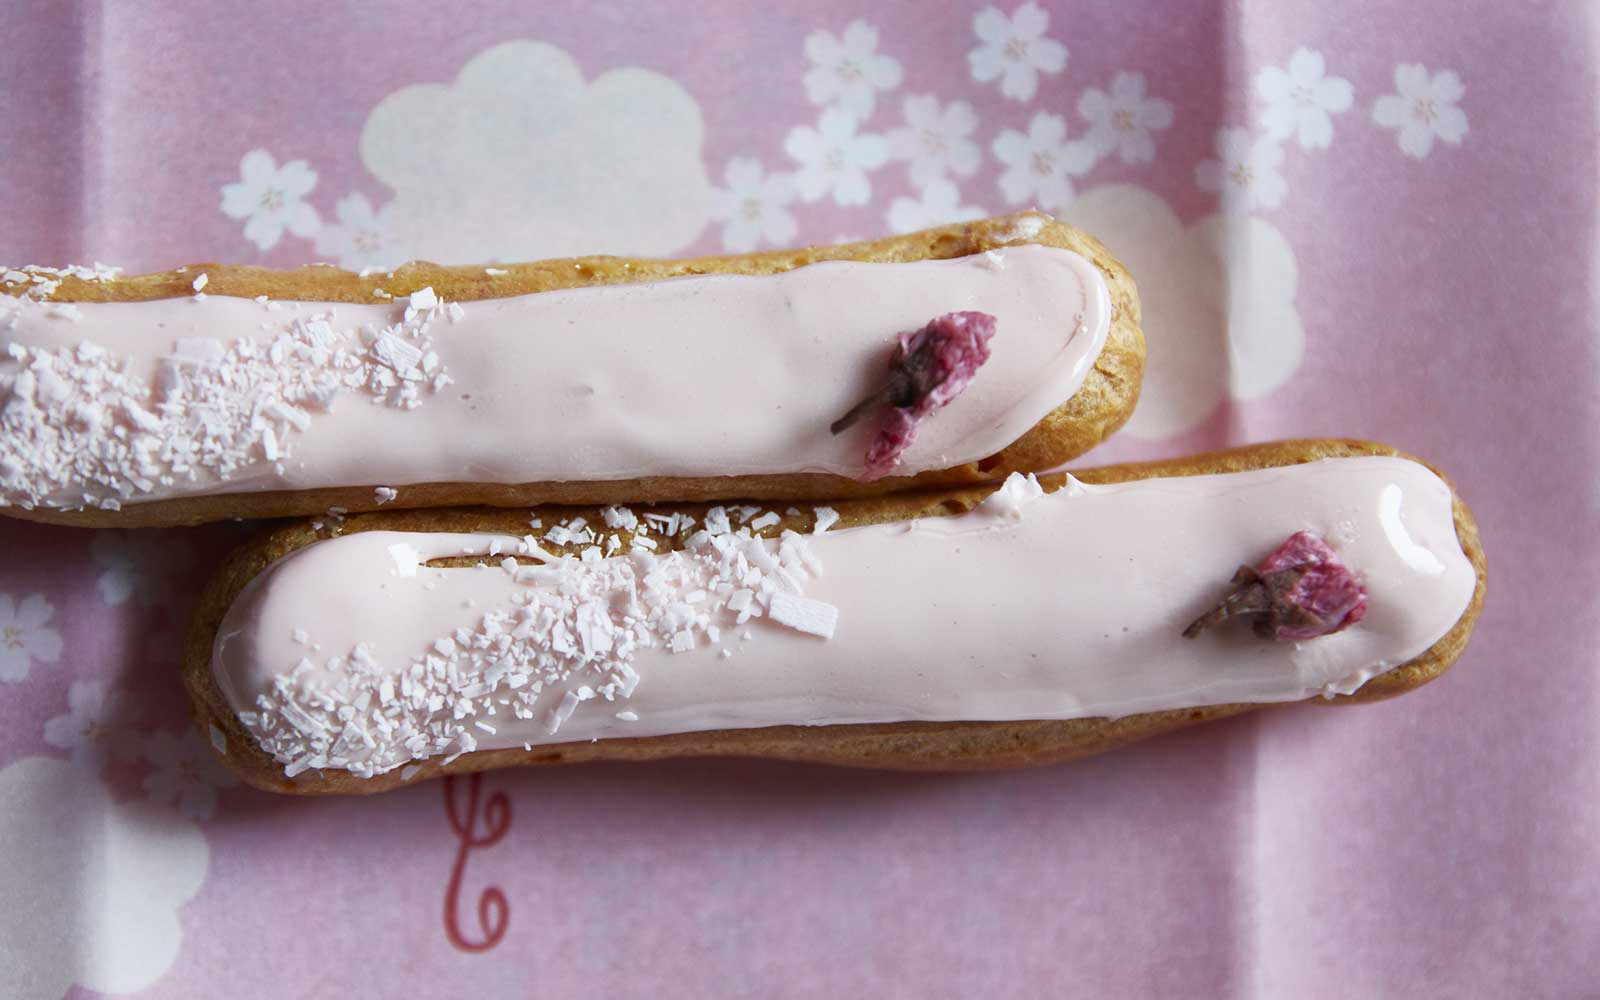 Eclaris from Maison Kayser decorated with cherry blossoms